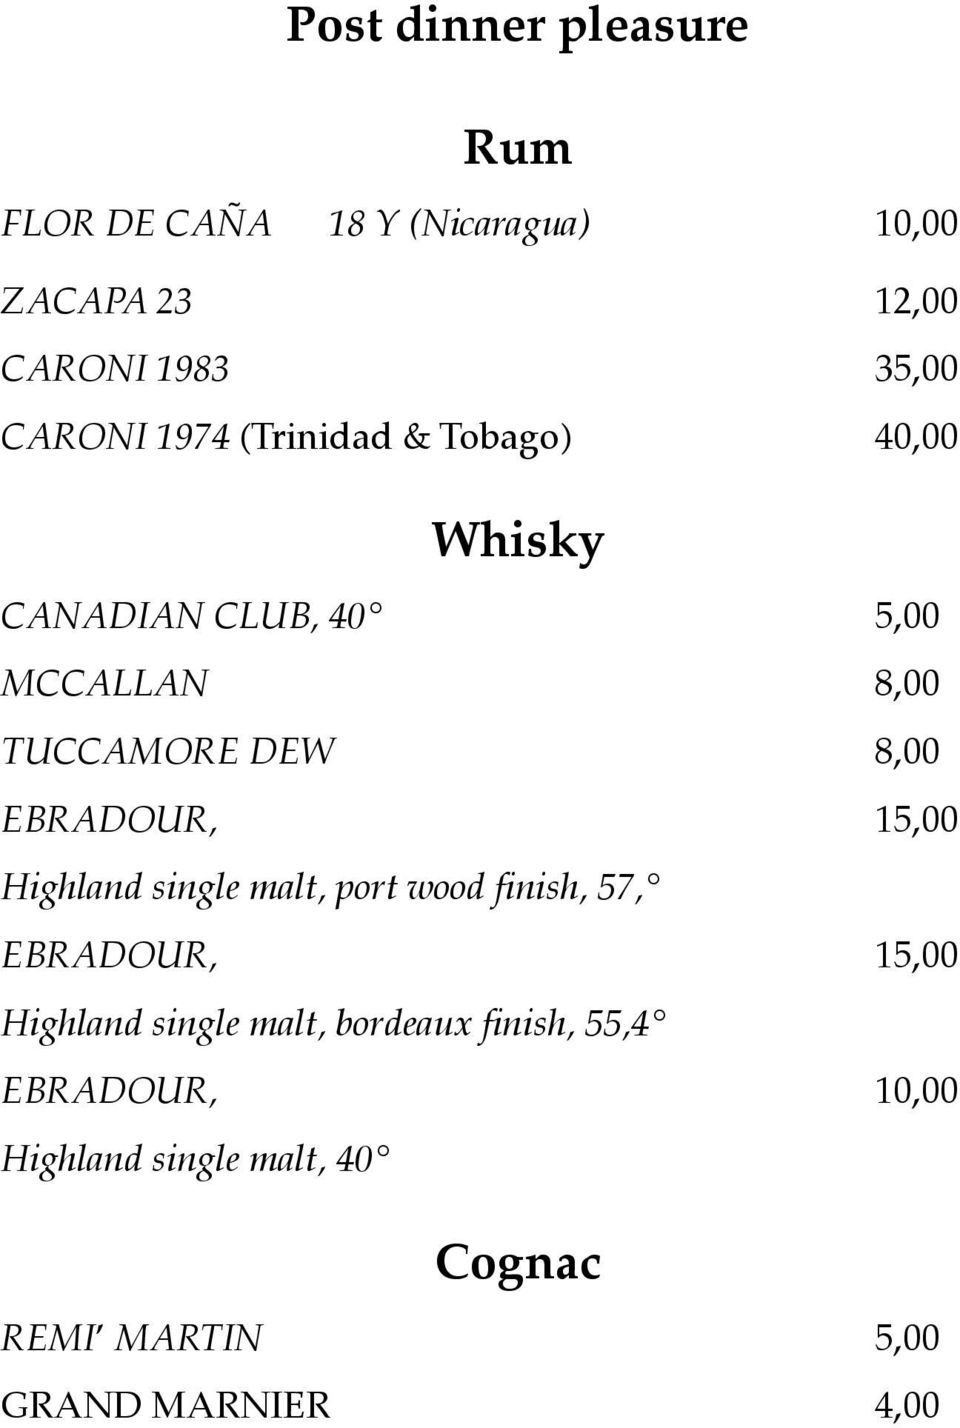 8,00 EBRADOUR, 15,00 Highland single malt, port wood finish, 57, EBRADOUR, 15,00 Highland single